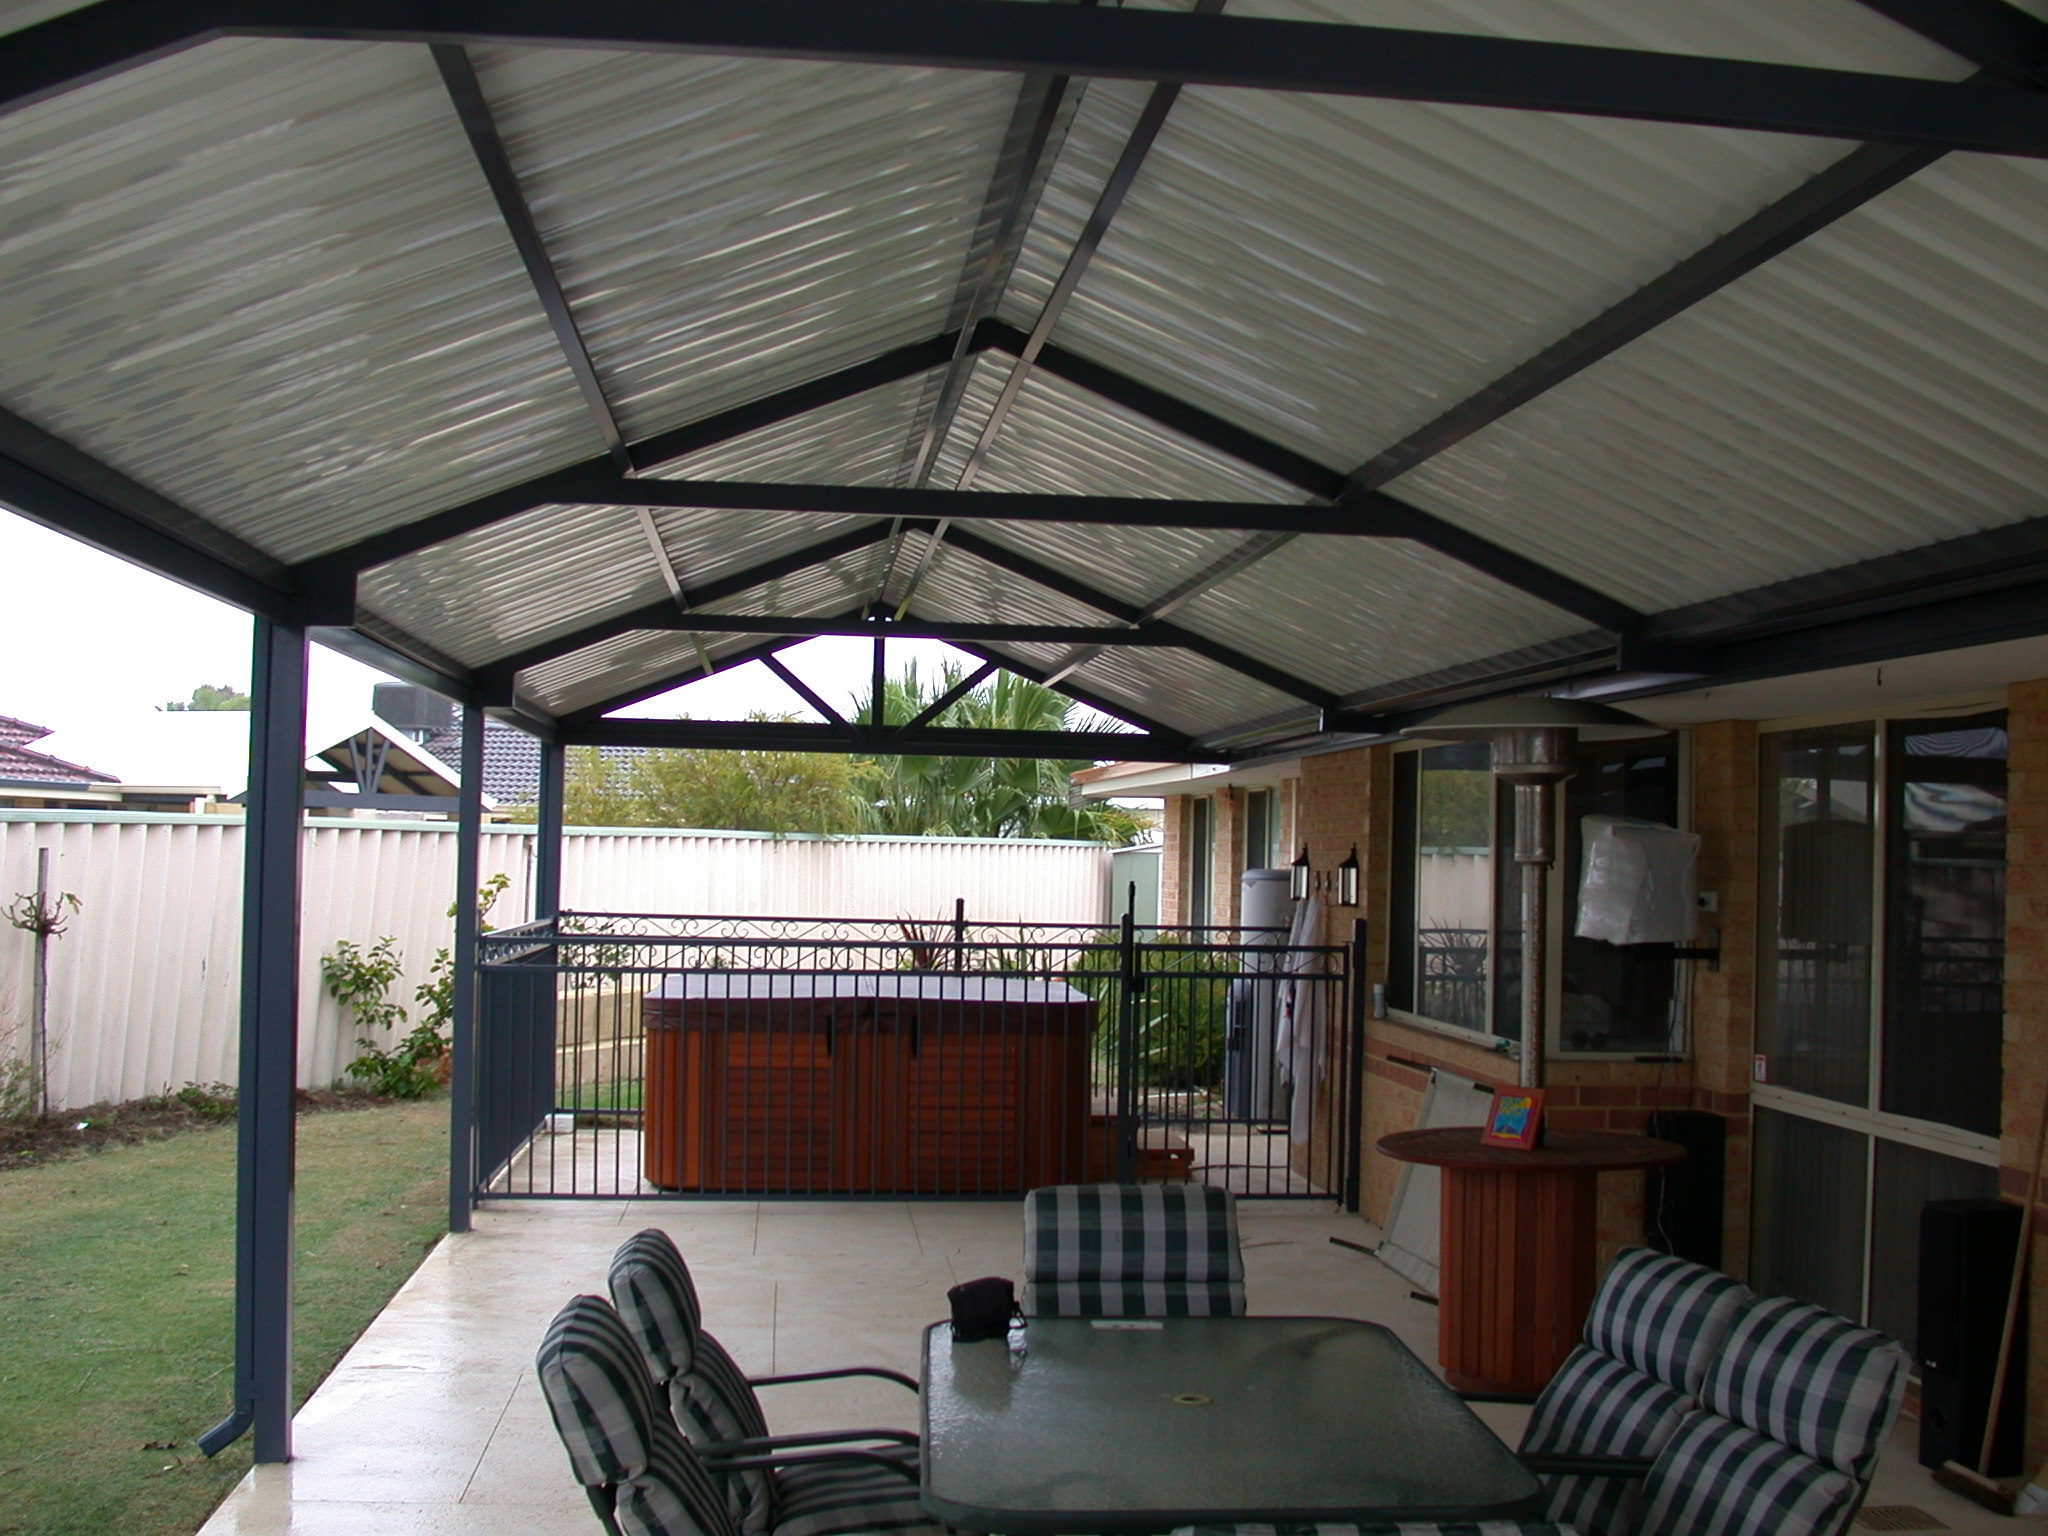 trojan-patios-and-sheds-gable-roof-rockingham